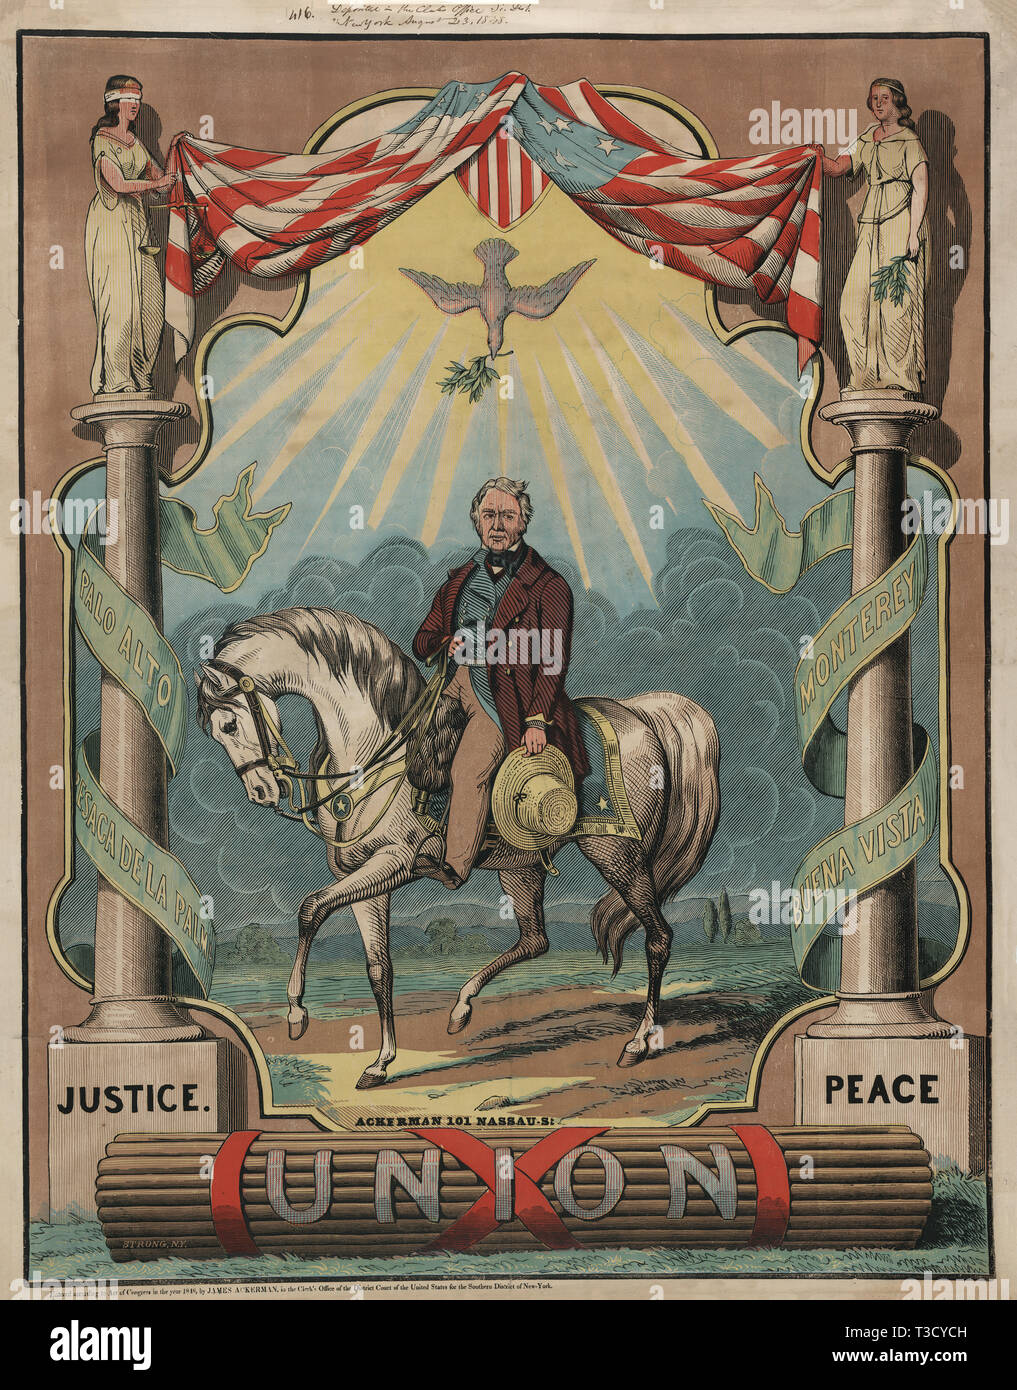 Campaign Poster for Democratic Nominee Zachary Taylor, Lithograph, Thomas W. Strong, Ackerman Publ., 1848 - Stock Image